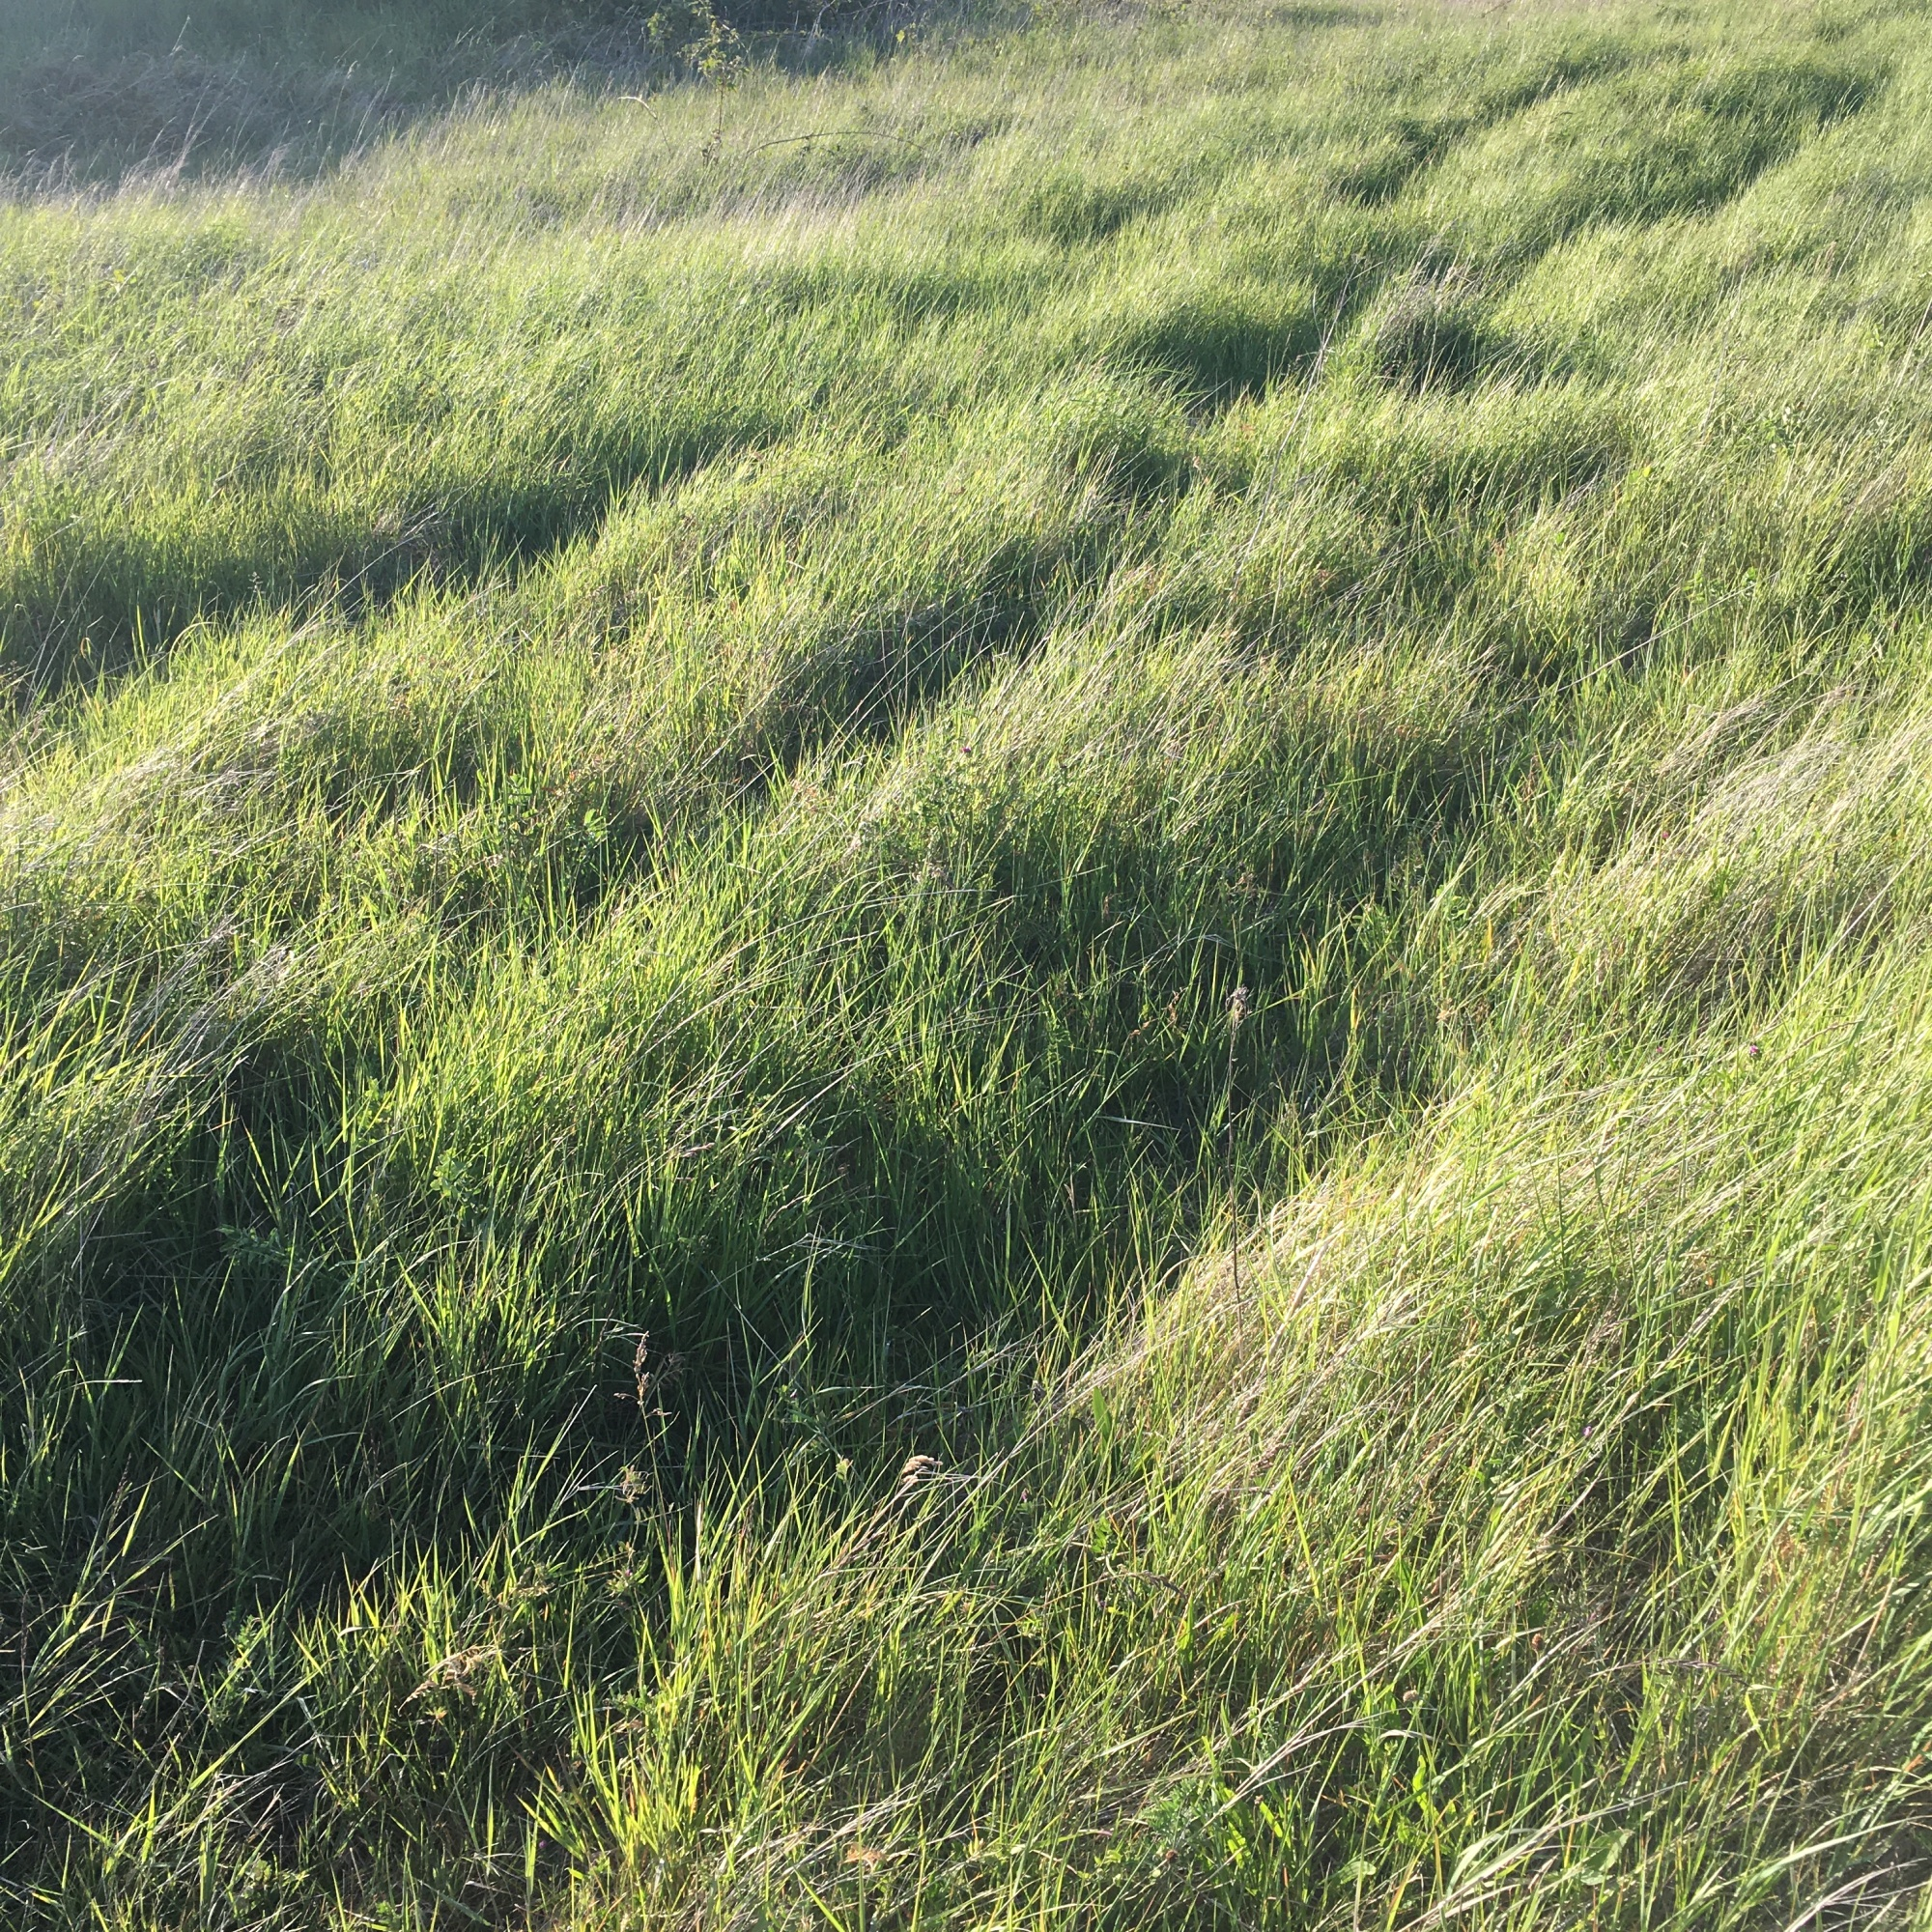 Grasses Project - Paths - animal track - Path No7 - Burry Port 2020